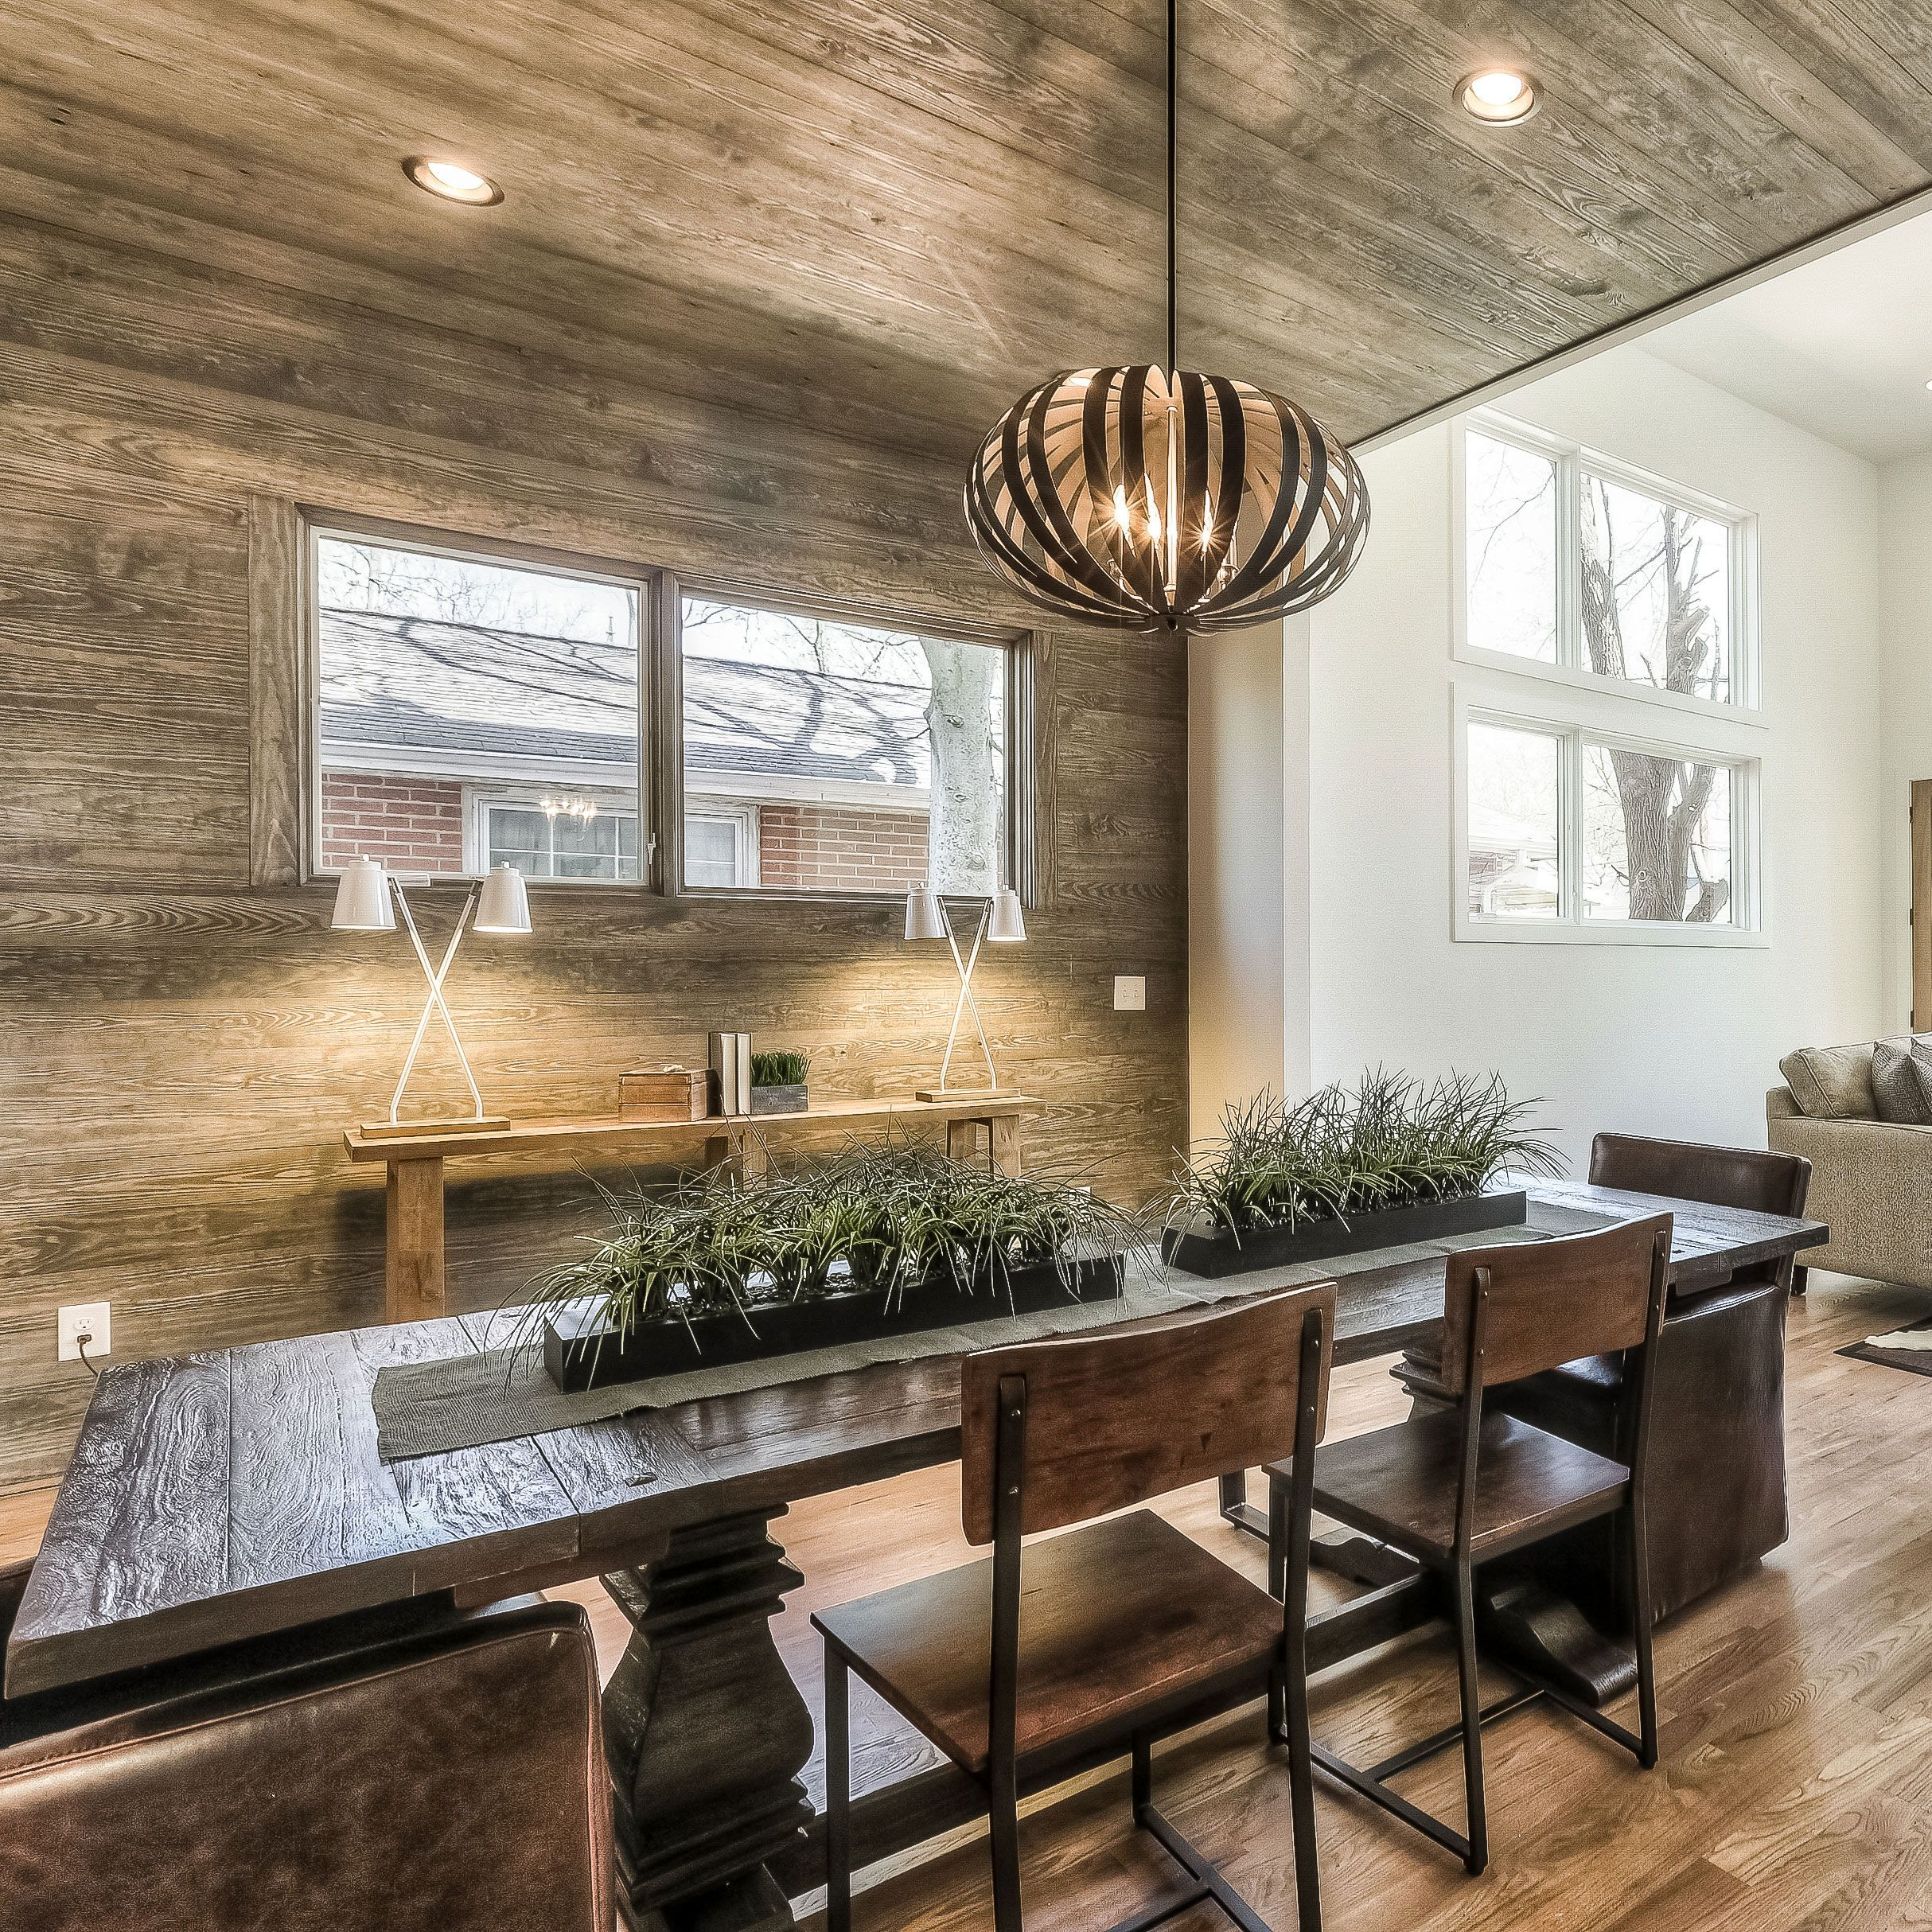 33 Modern Style Cozy Wooden Kitchen Design Ideas: Now That's What You Call A Warm And Cozy Dining Room